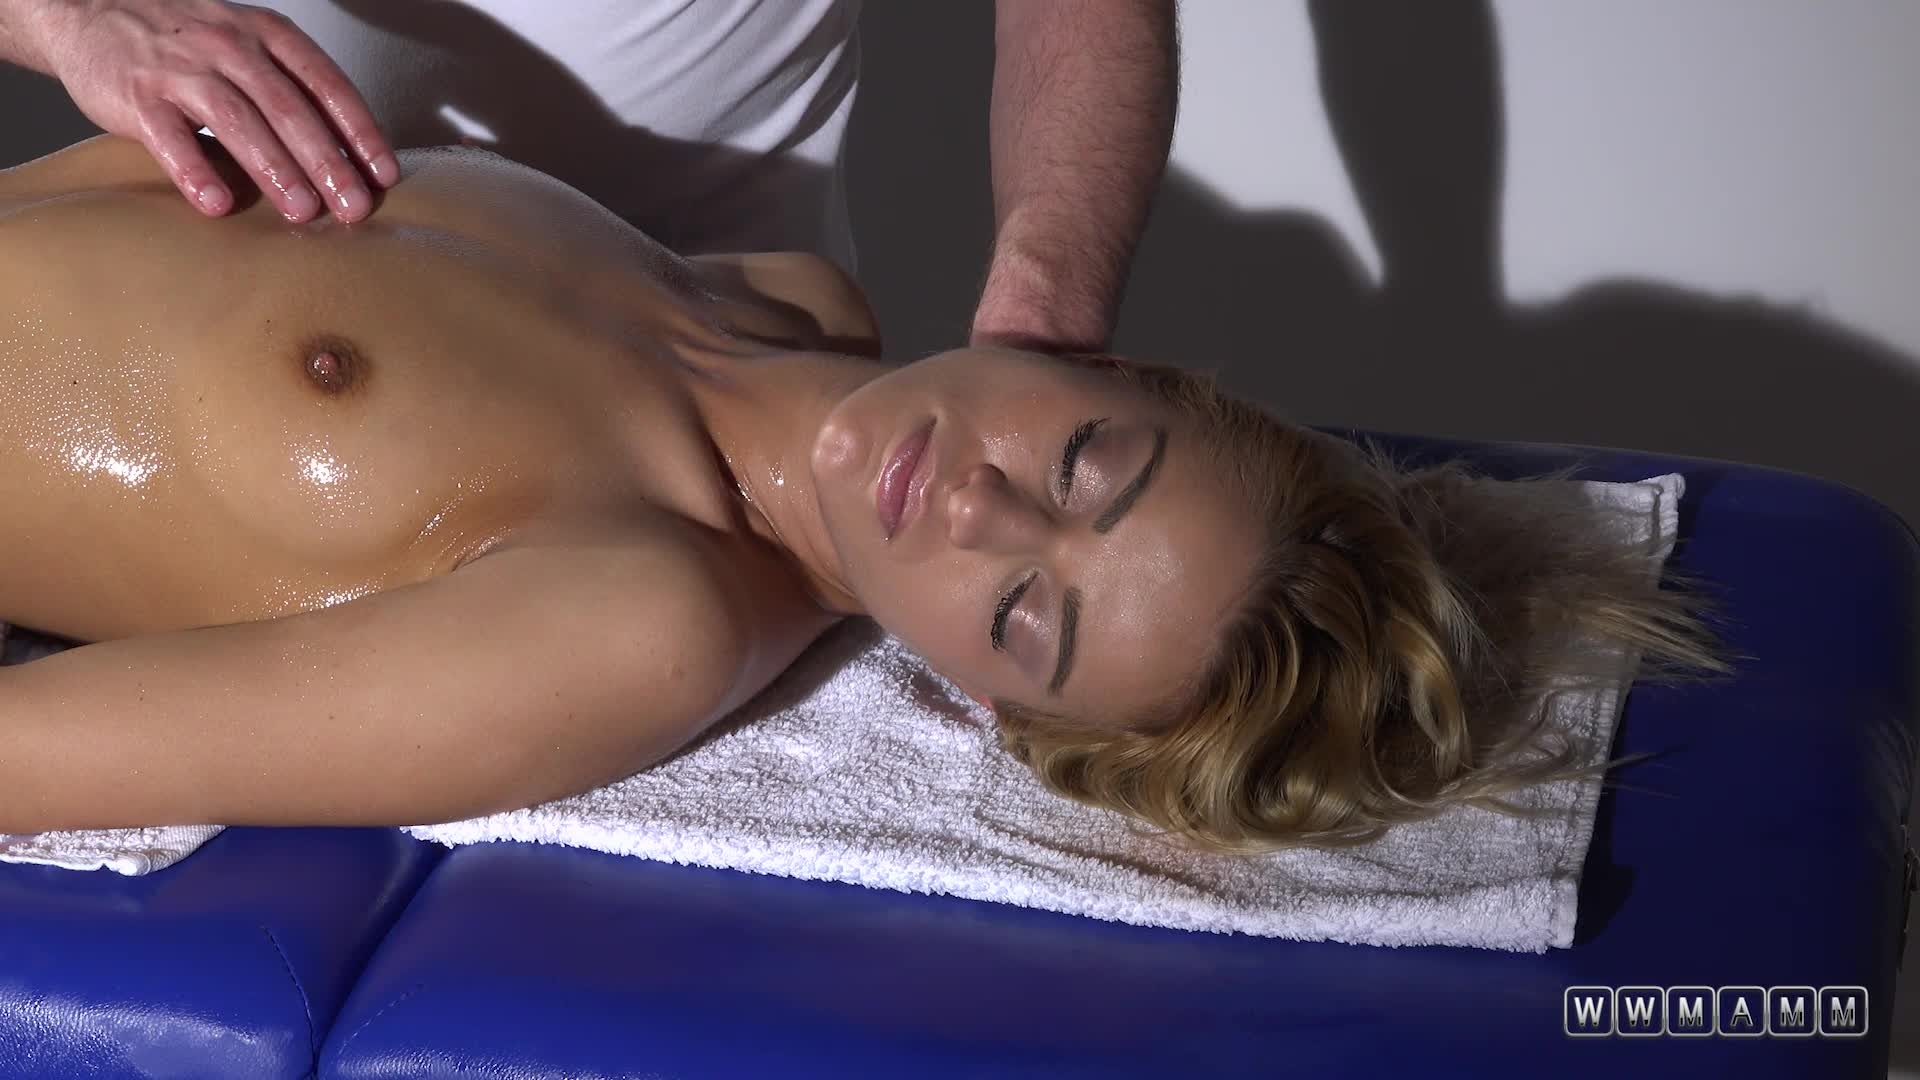 Sexy Blonde Model Having Her First Erotic Massage Between Shows